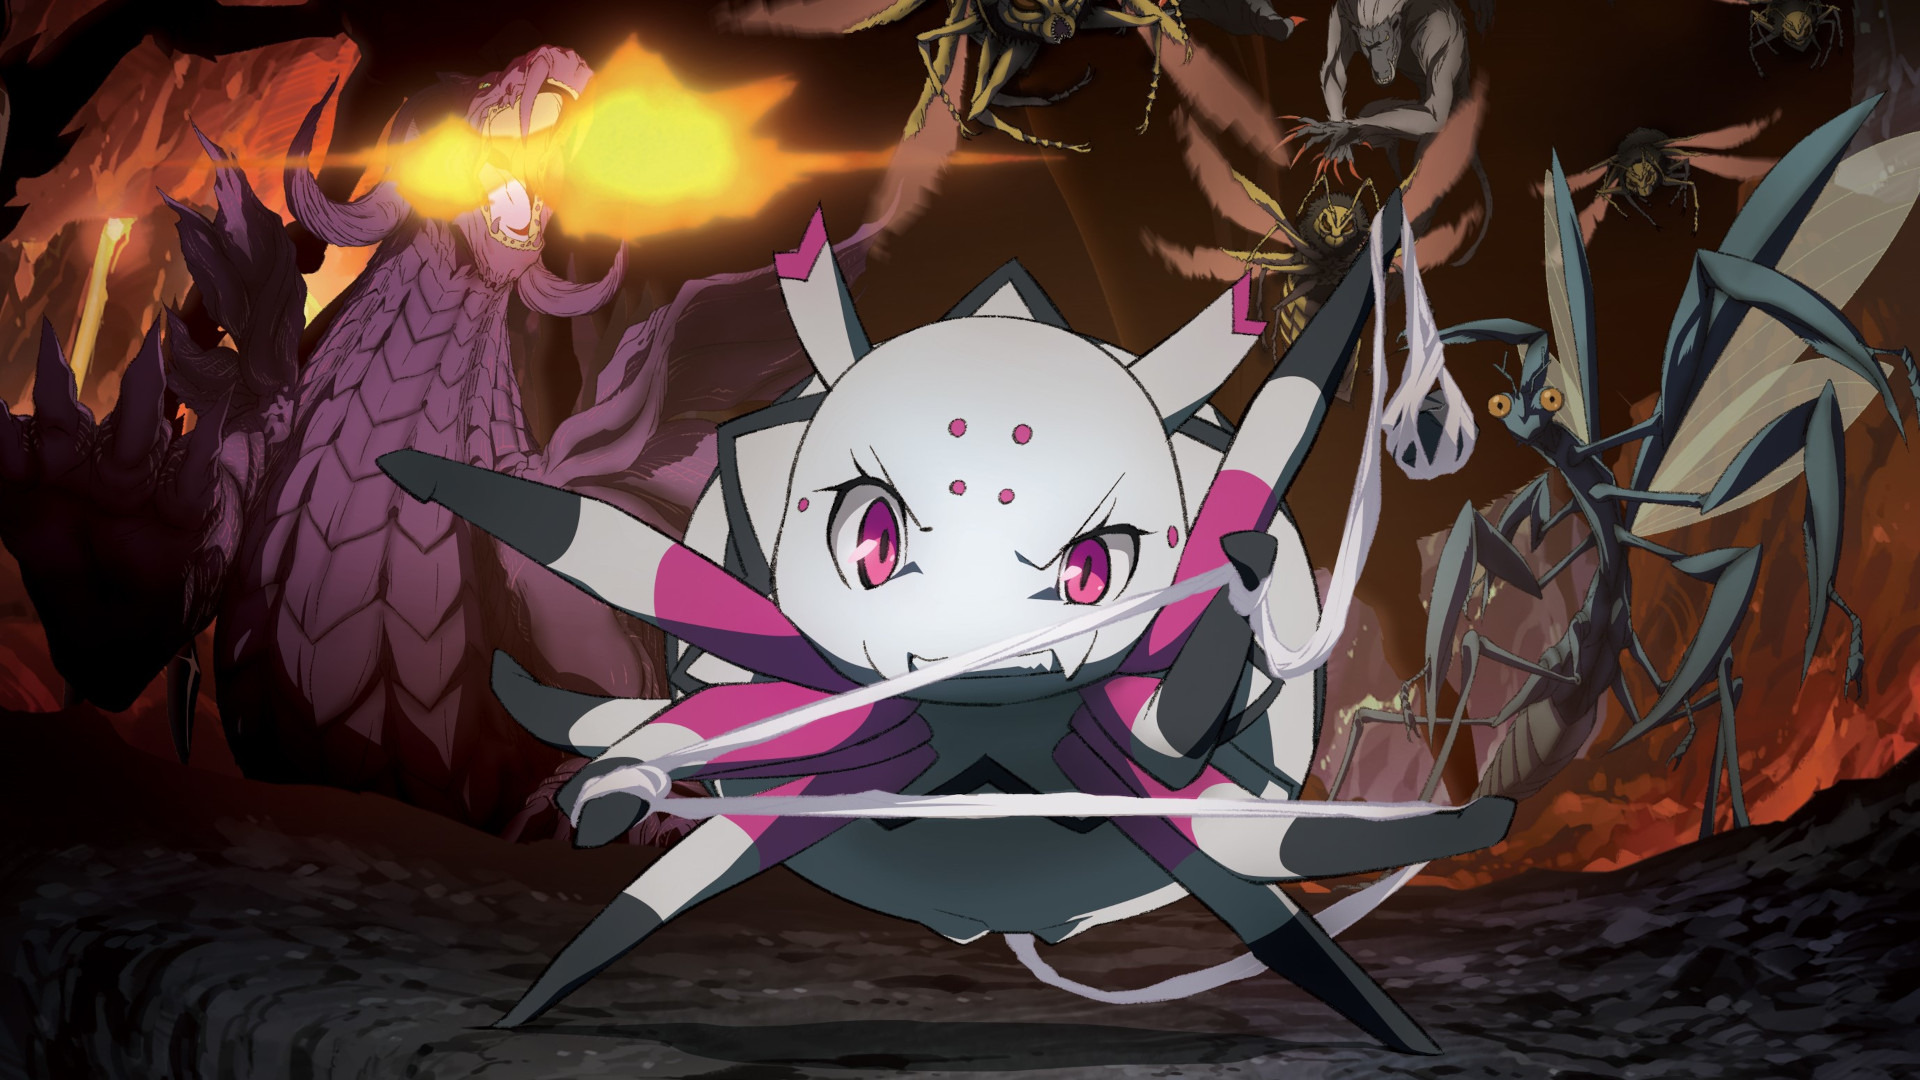 Anime So I'm a Spider, So What?